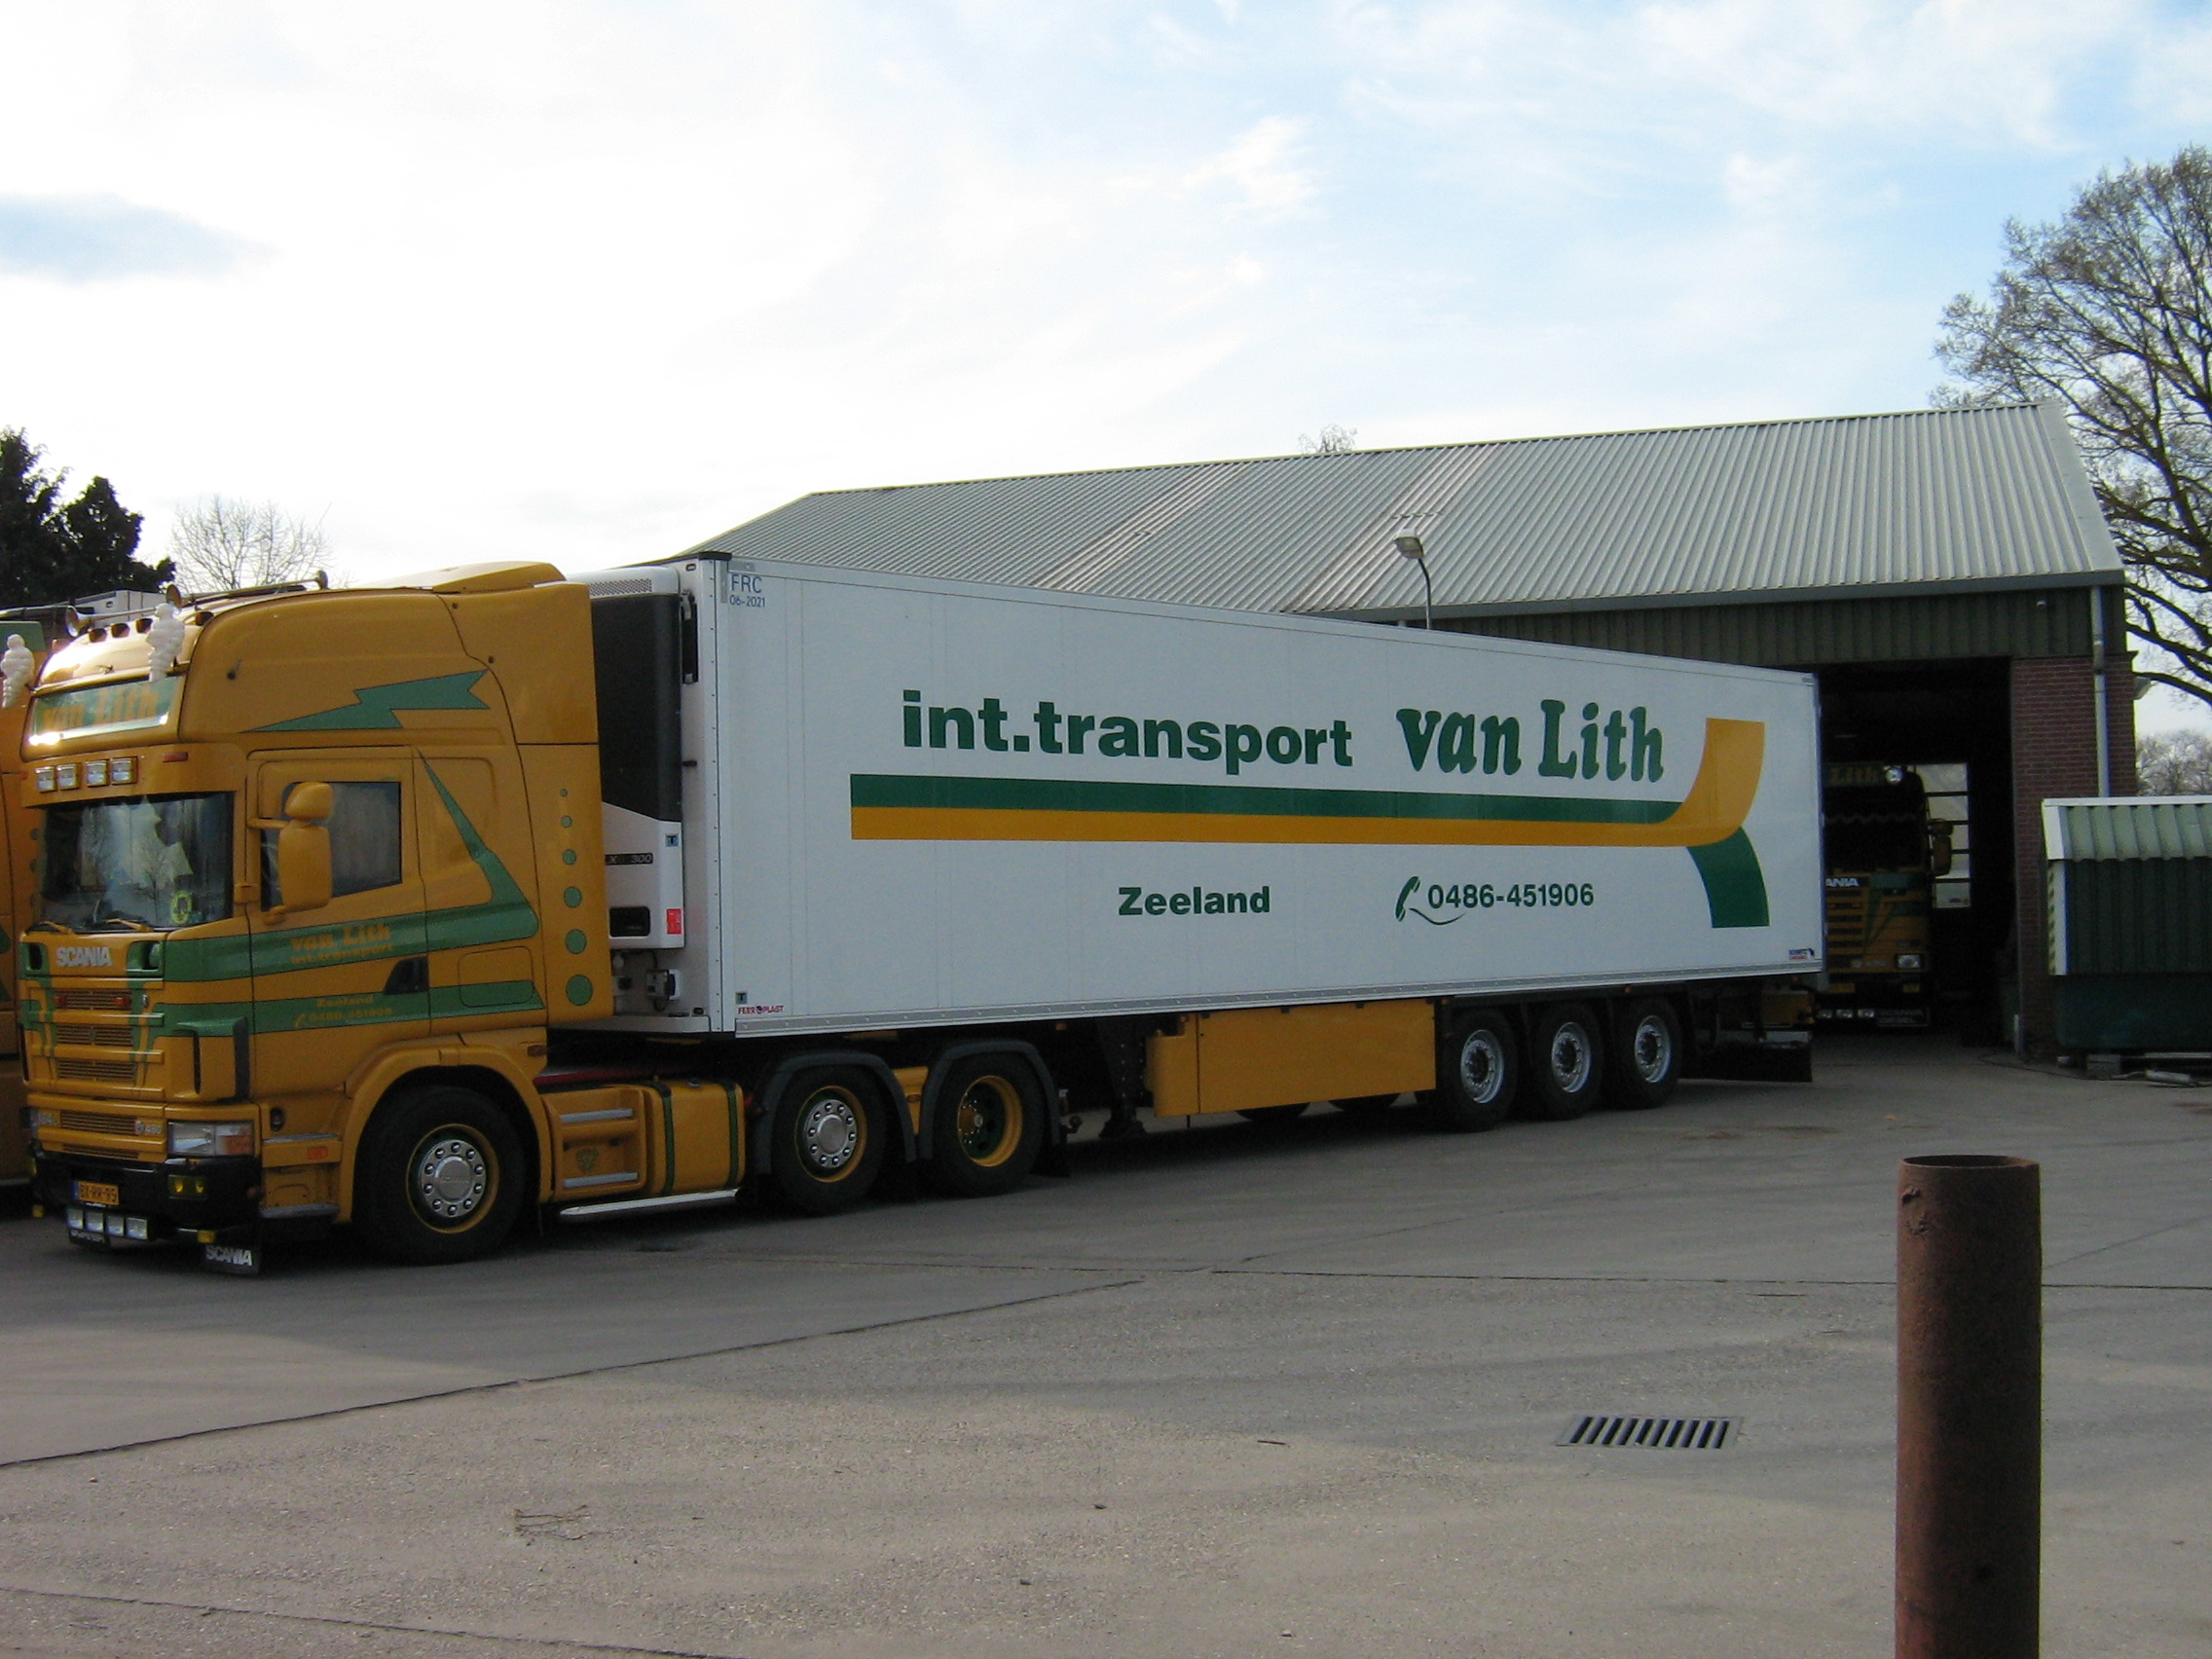 v Lith transport